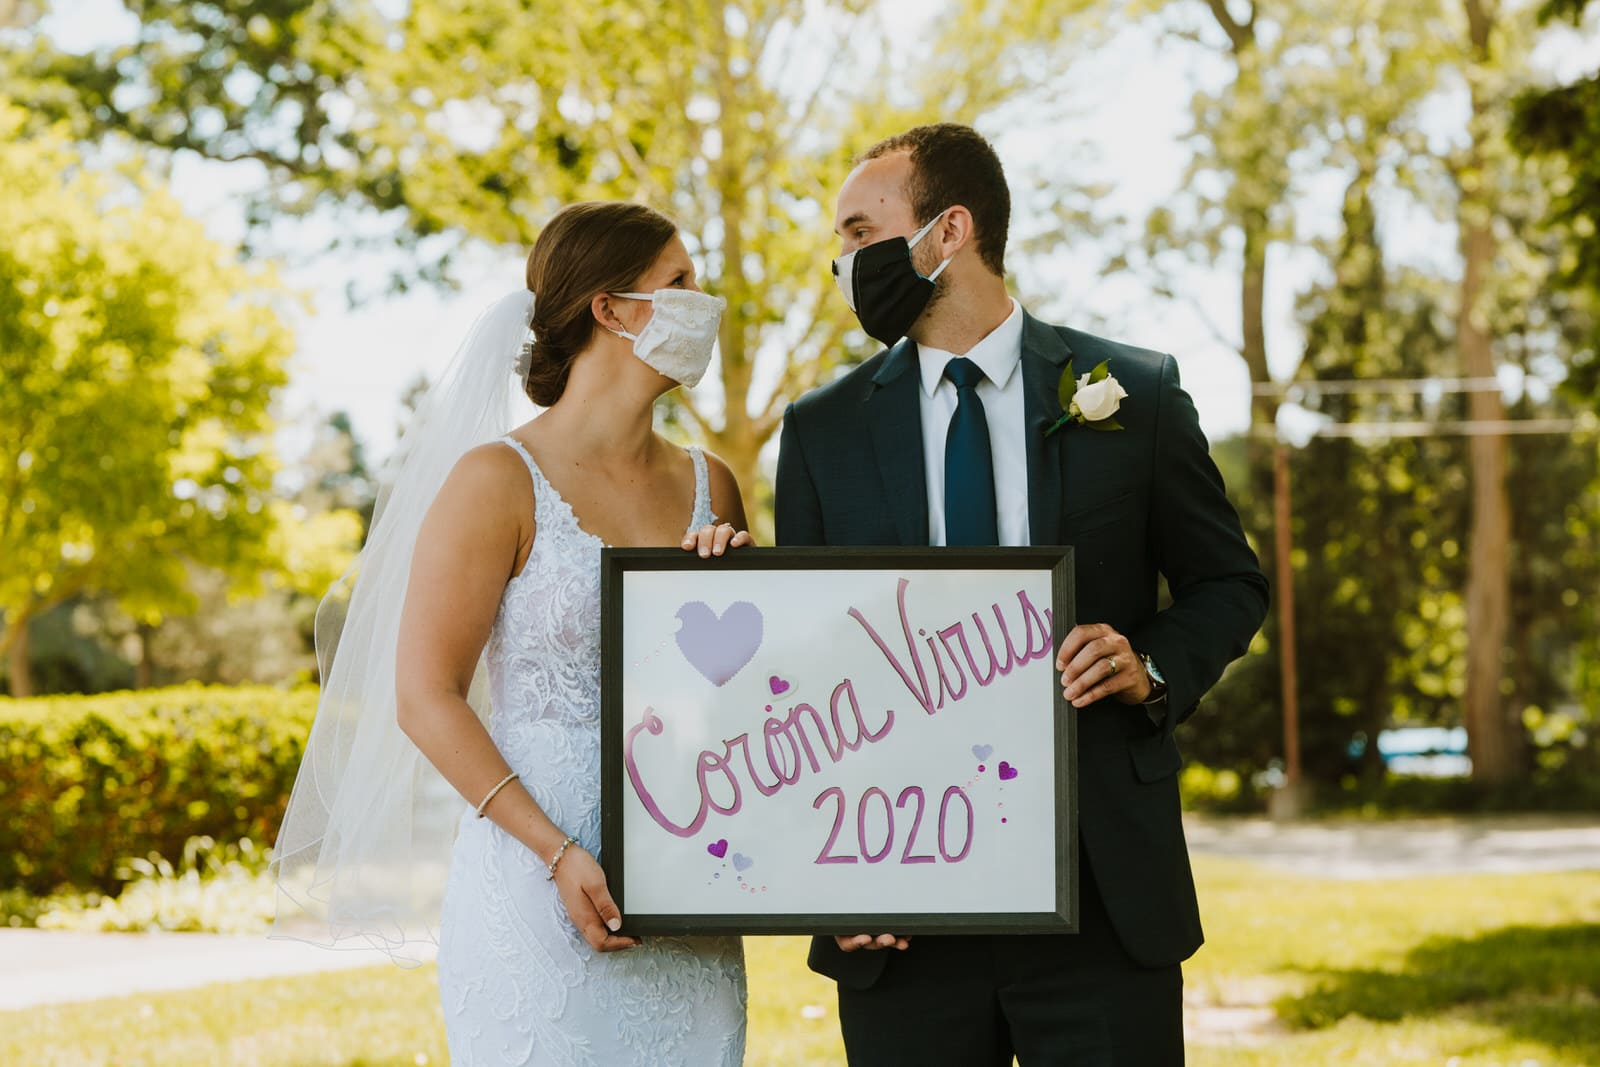 Love in the Time of Corona - Wedding Policies